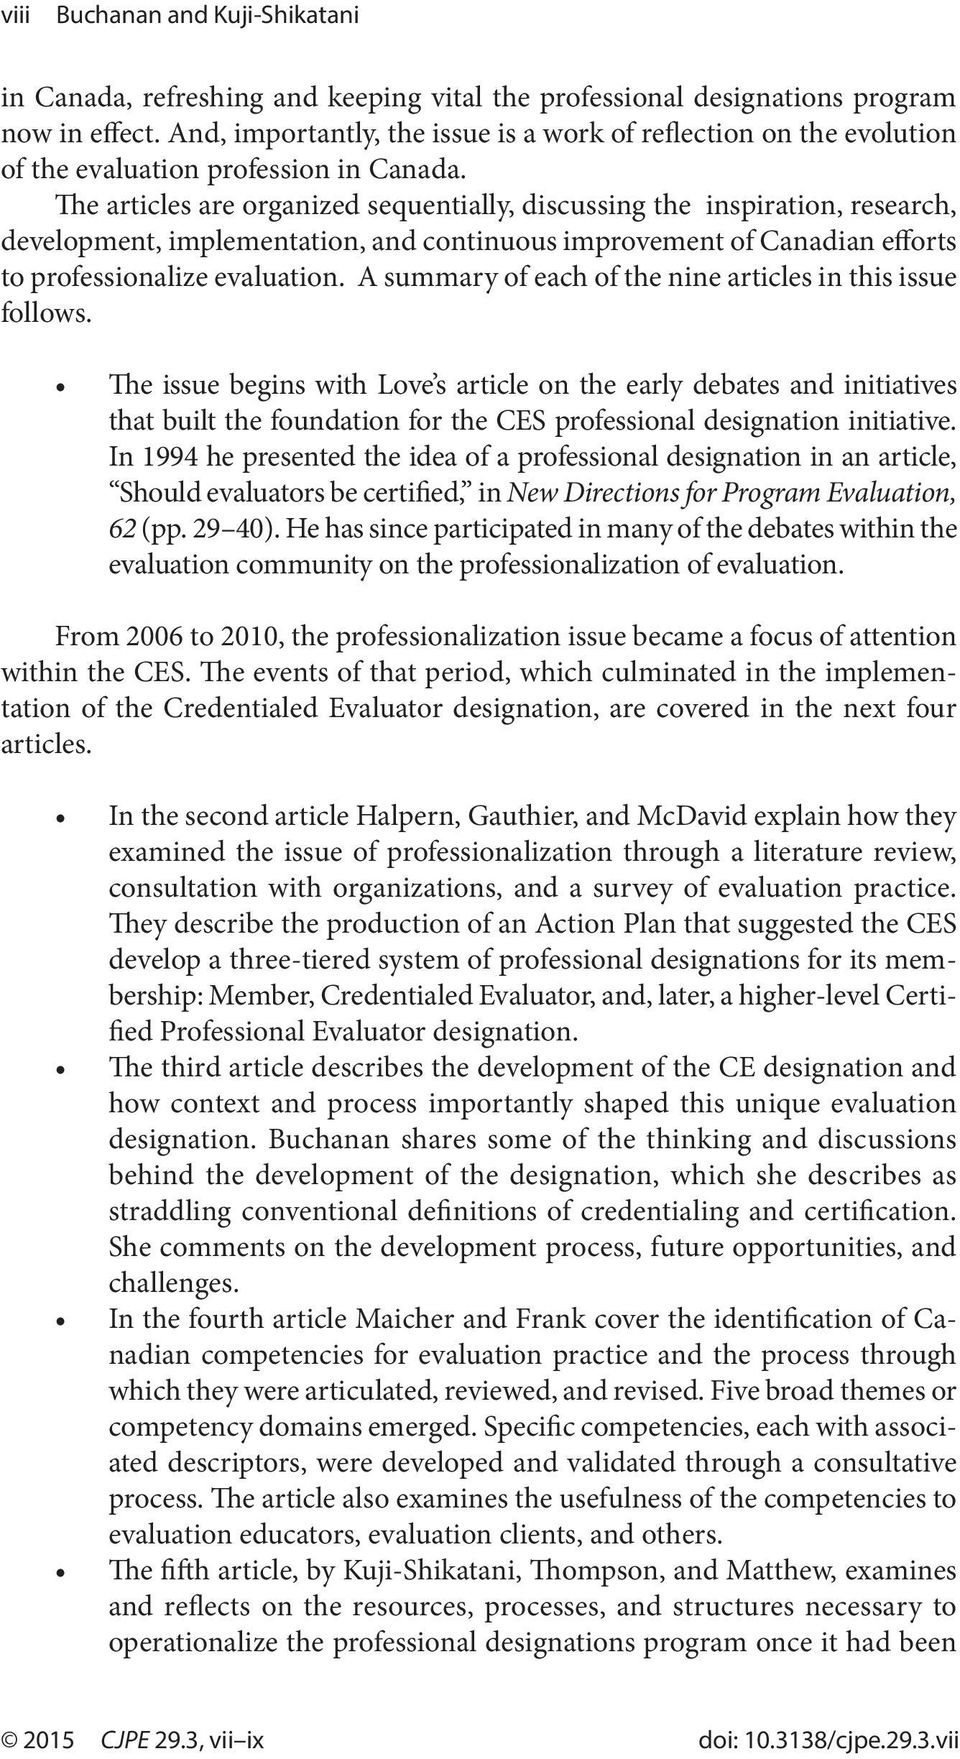 The articles are organized sequentially, discussing the inspiration, research, development, implementation, and continuous improvement of Canadian efforts to professionalize evaluation.